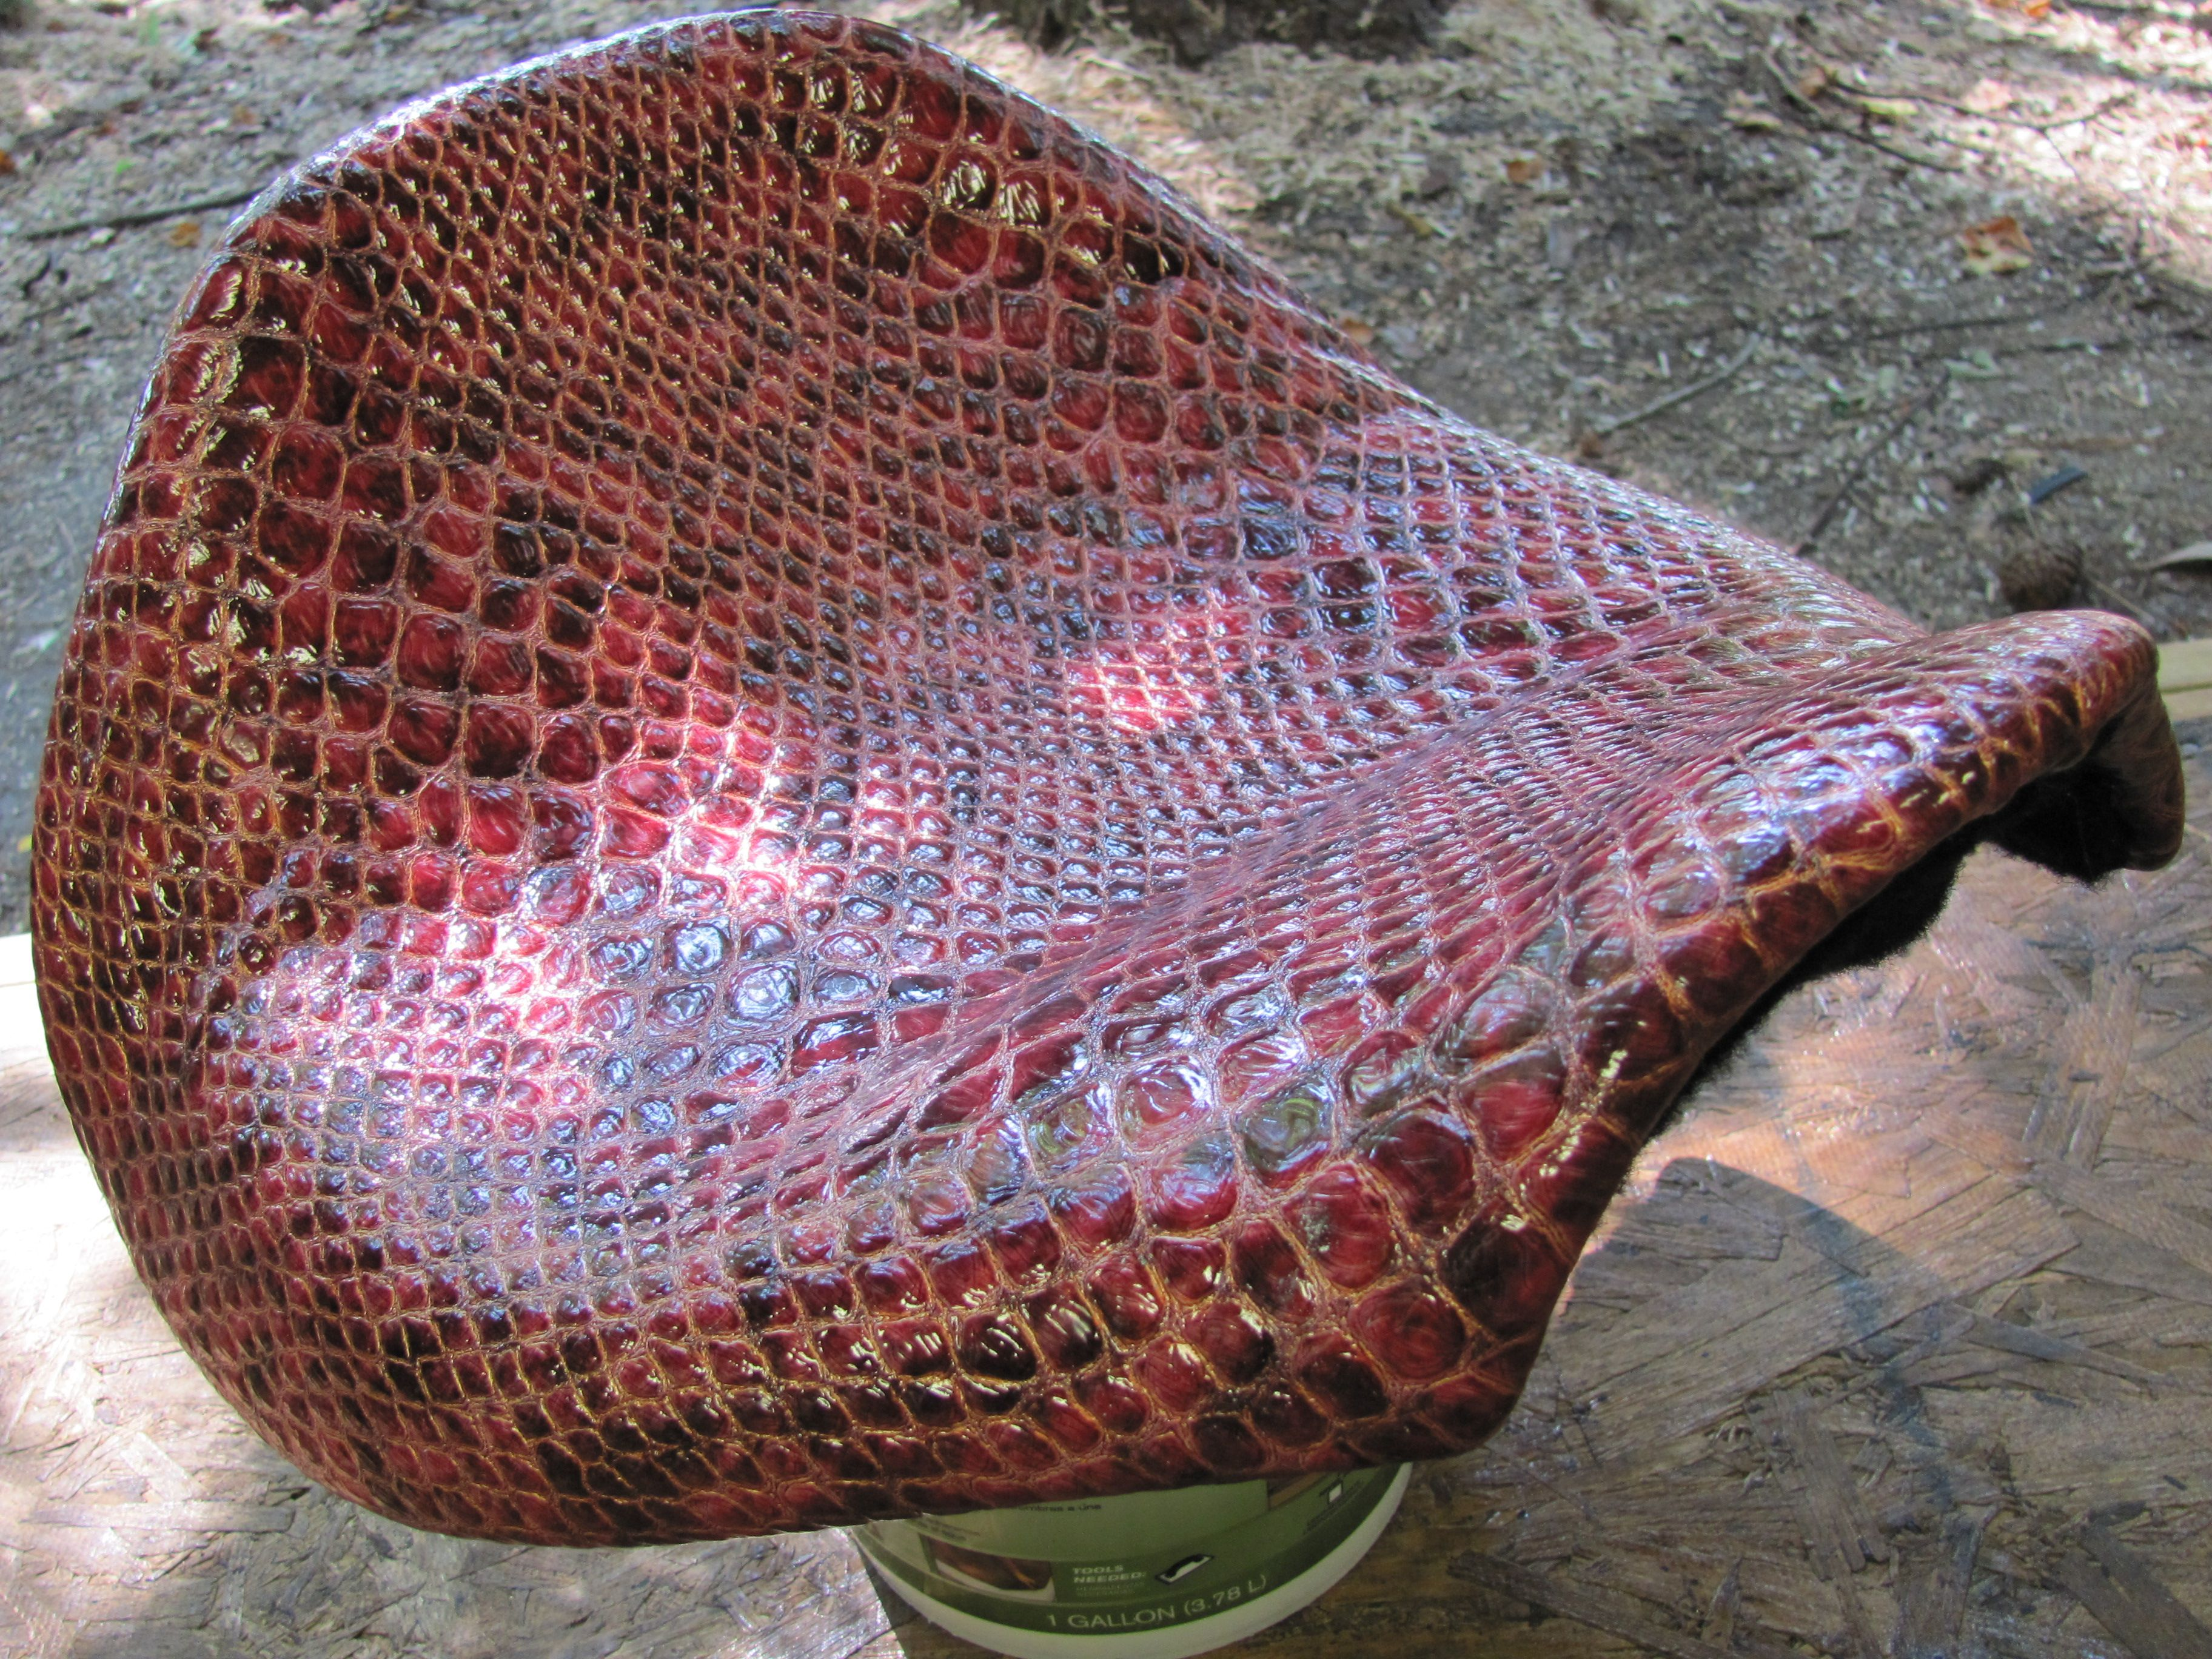 snake skin motorcycle seat find similar snakeskin fabrics for motorcycle seat upholstery at. Black Bedroom Furniture Sets. Home Design Ideas